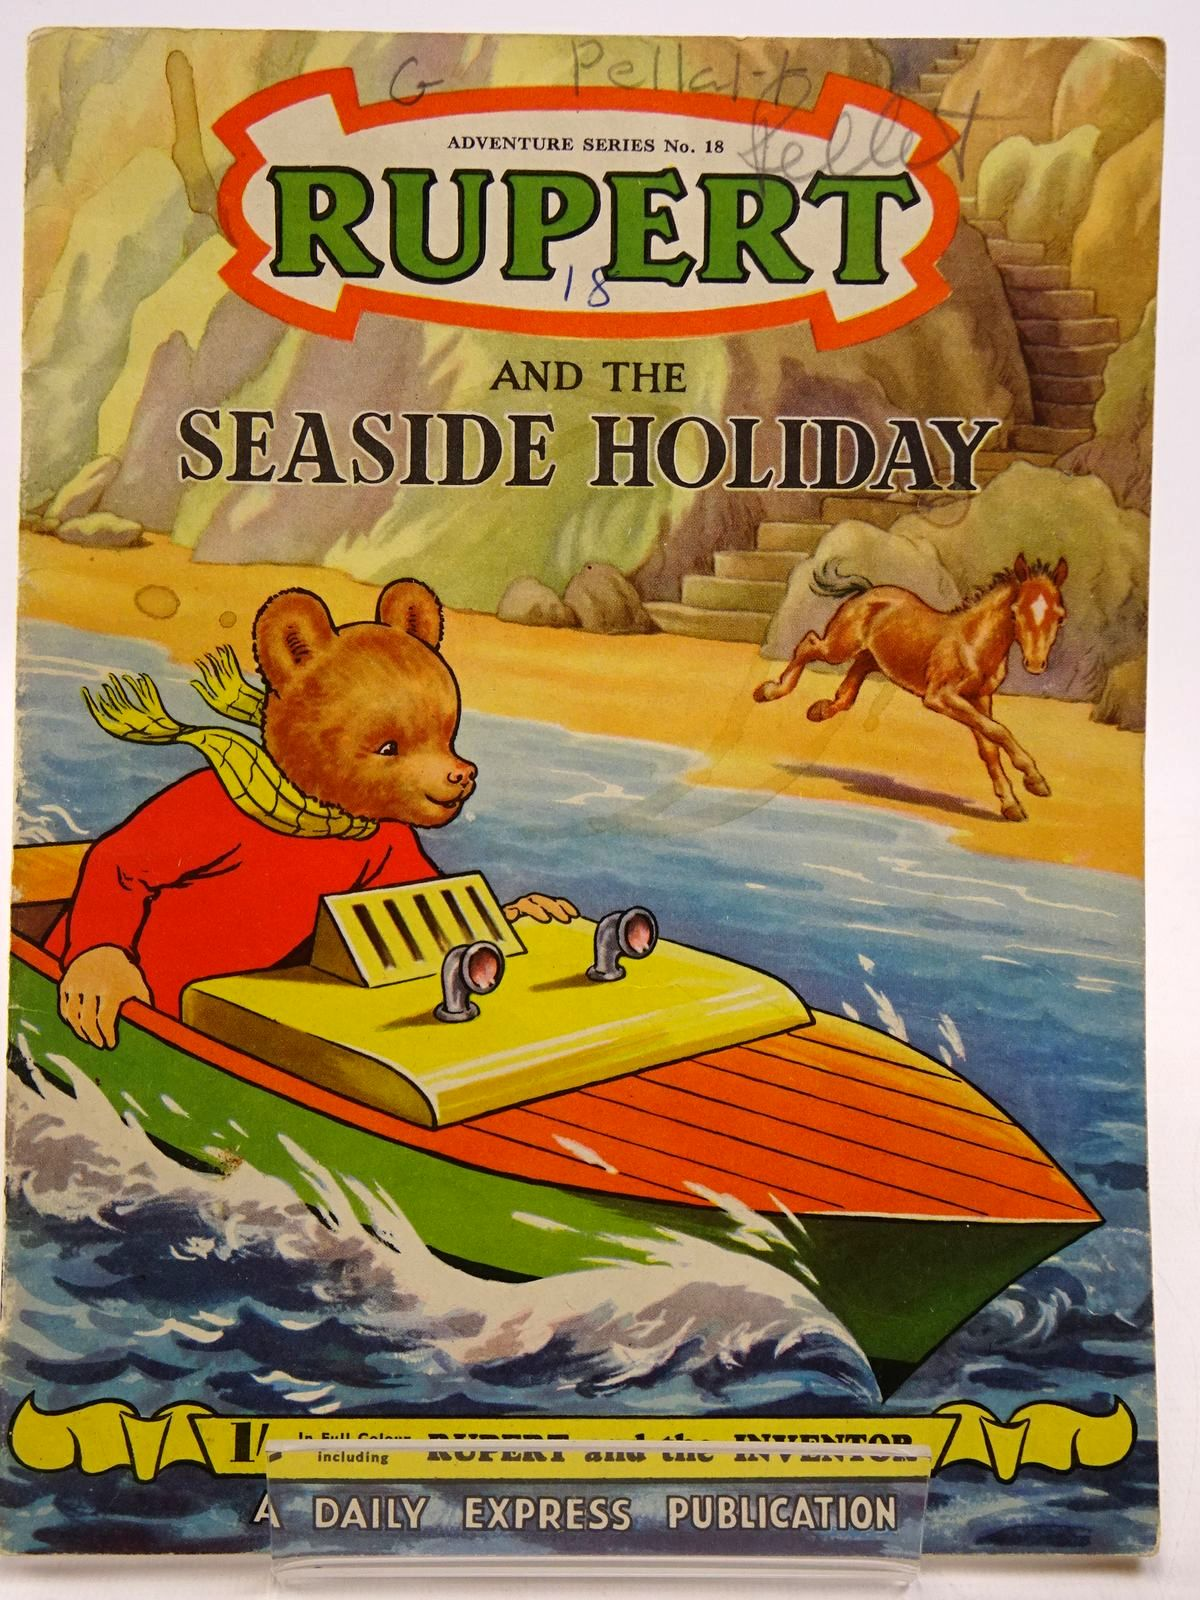 Photo of RUPERT ADVENTURE SERIES No. 18 - RUPERT AND THE SEASIDE HOLIDAY written by Bestall, Alfred illustrated by Bestall, Alfred published by Daily Express (STOCK CODE: 2130870)  for sale by Stella & Rose's Books